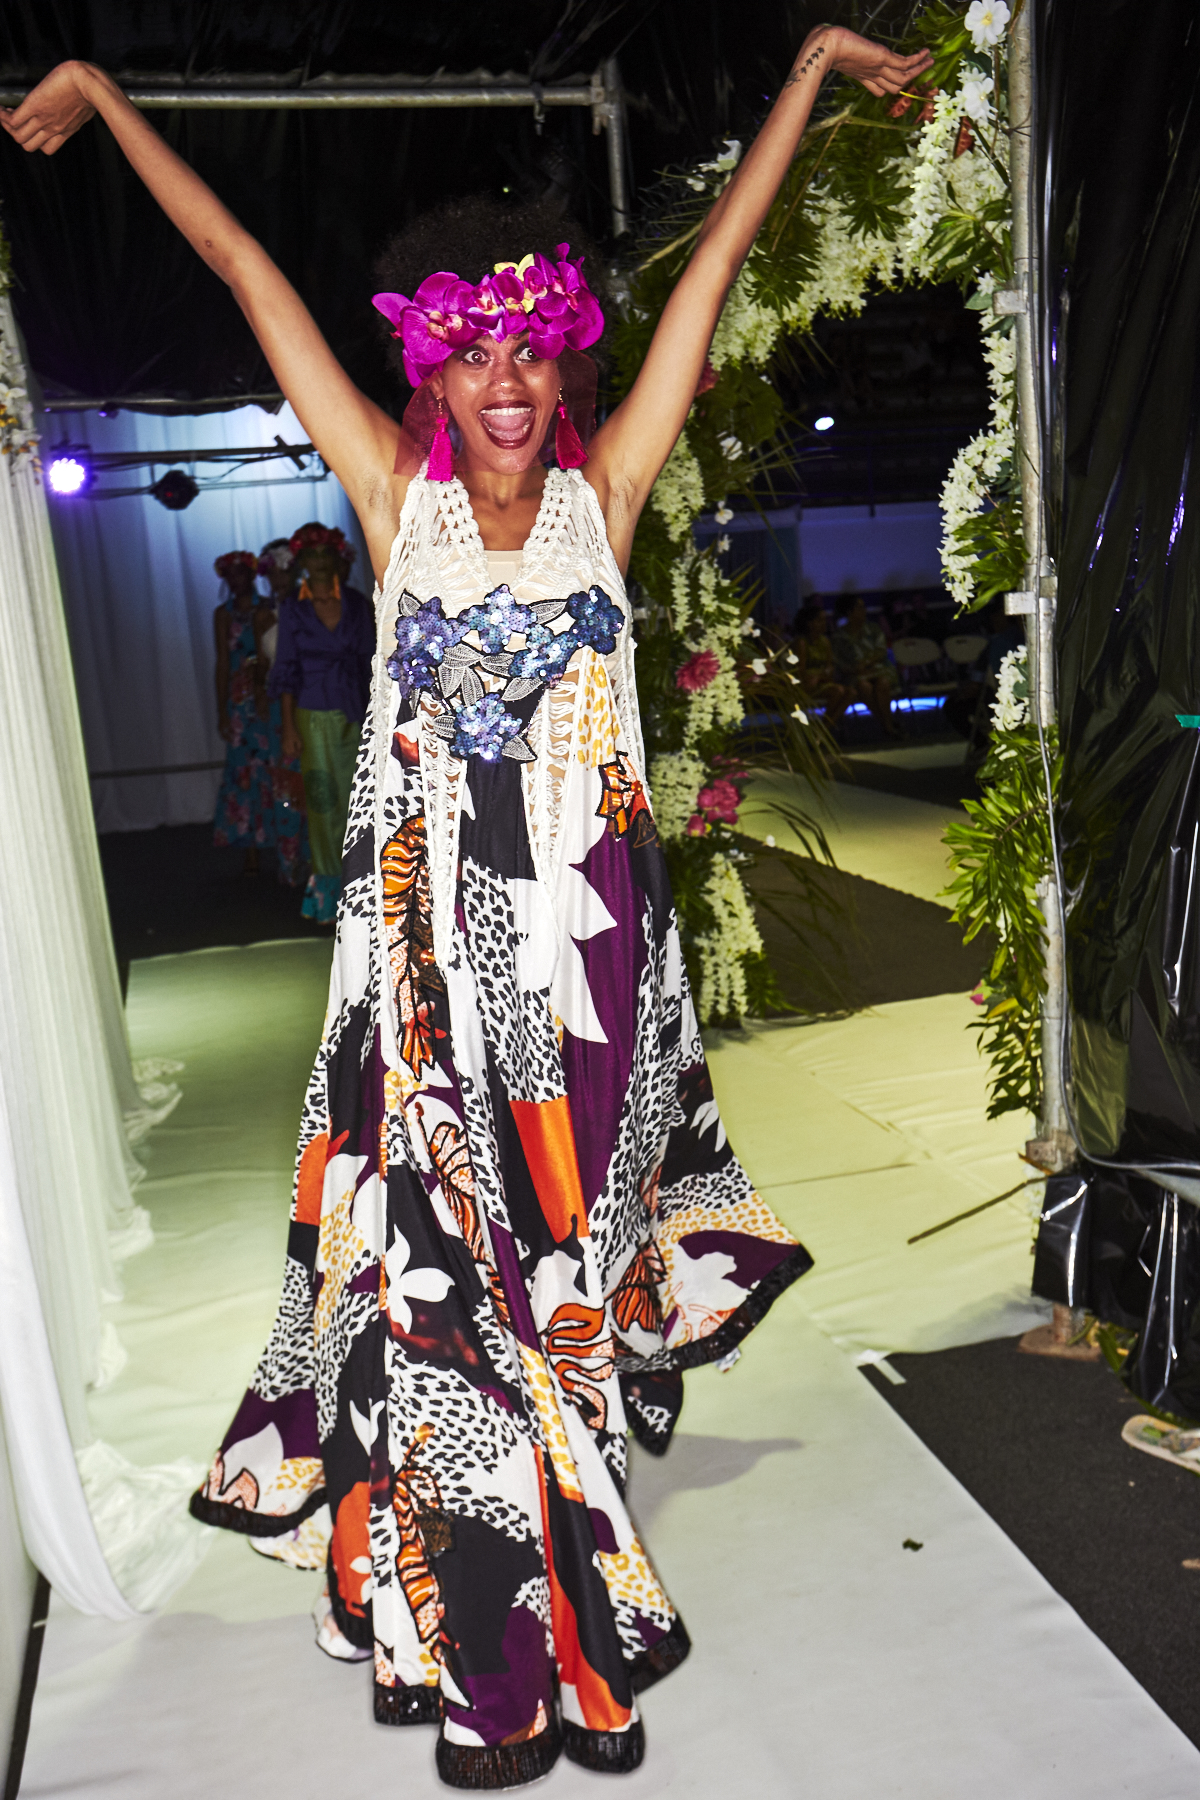 The Haus of Koila by Adi Koila Ganilau Lee Resort Luxe 2018 Fashion Show Suva, Fiji Backstage